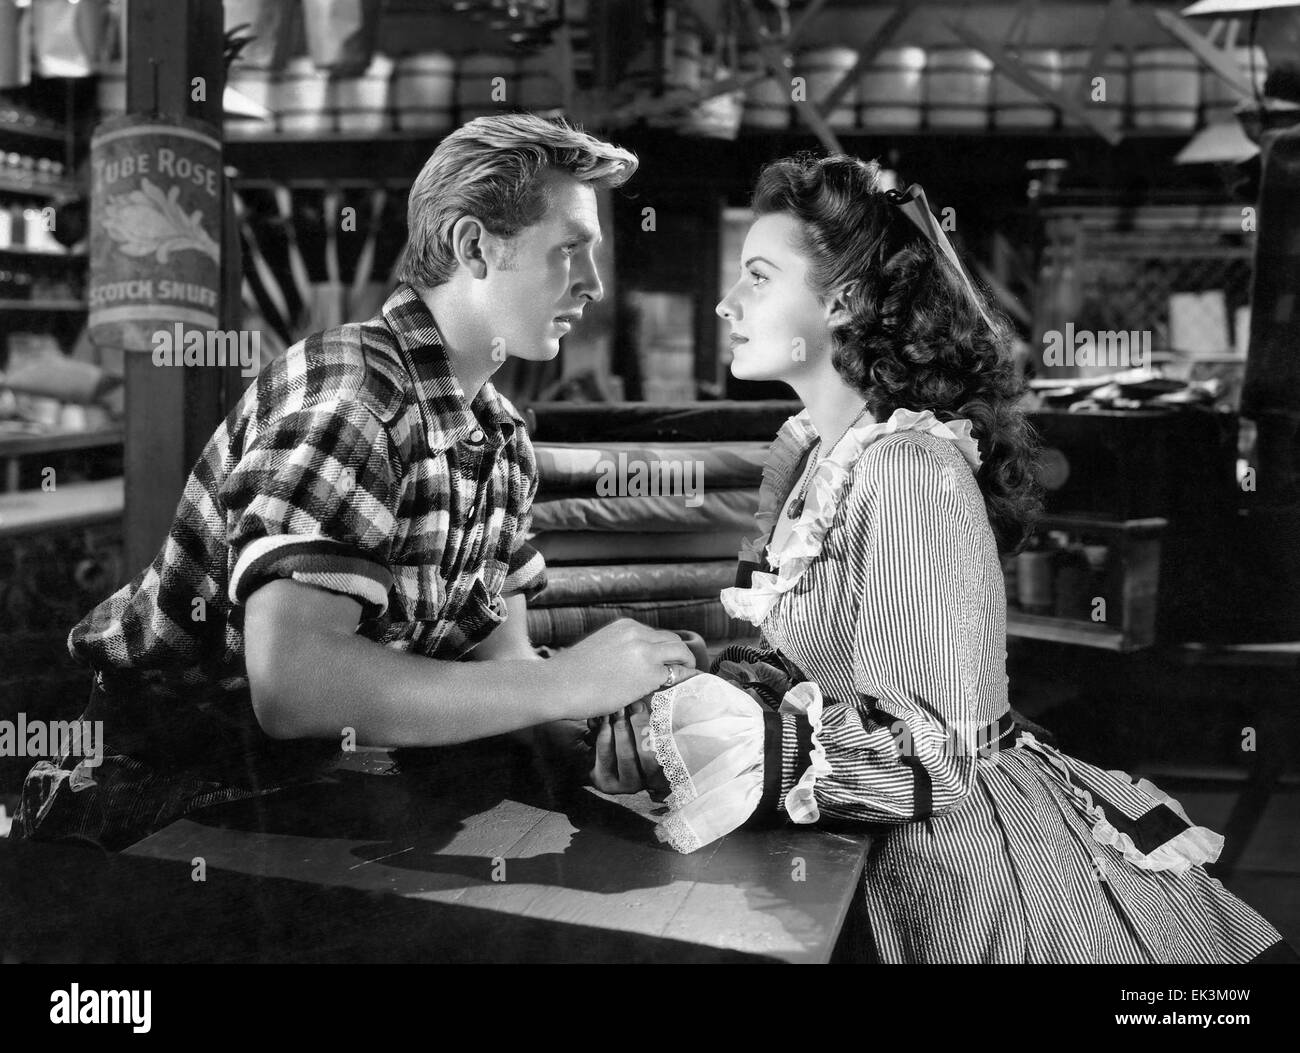 Lloyd Bridges, Rhonda Fleming, on-set of the Film 'Abilene Town', 1946 - Stock Image